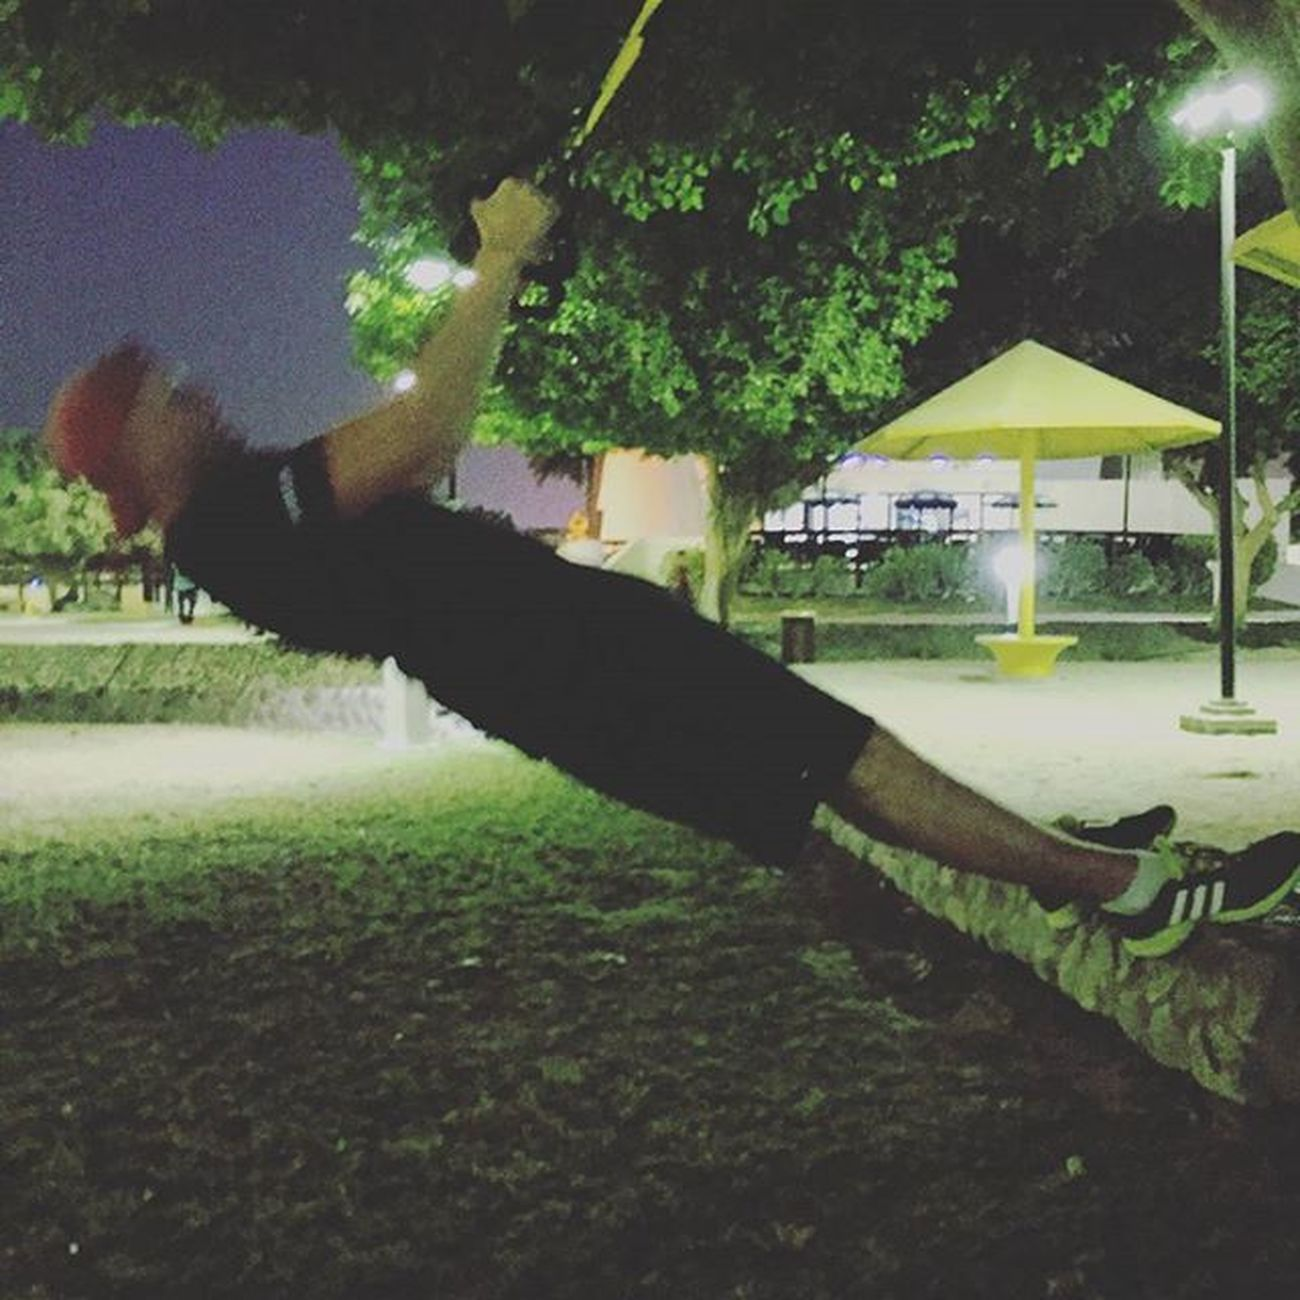 Love this bit of kit TRX Trxrow Tree Park Beachfront Exercise Nighttime Pt  Nike Adidas Ummsequim Dubai Lovedubai